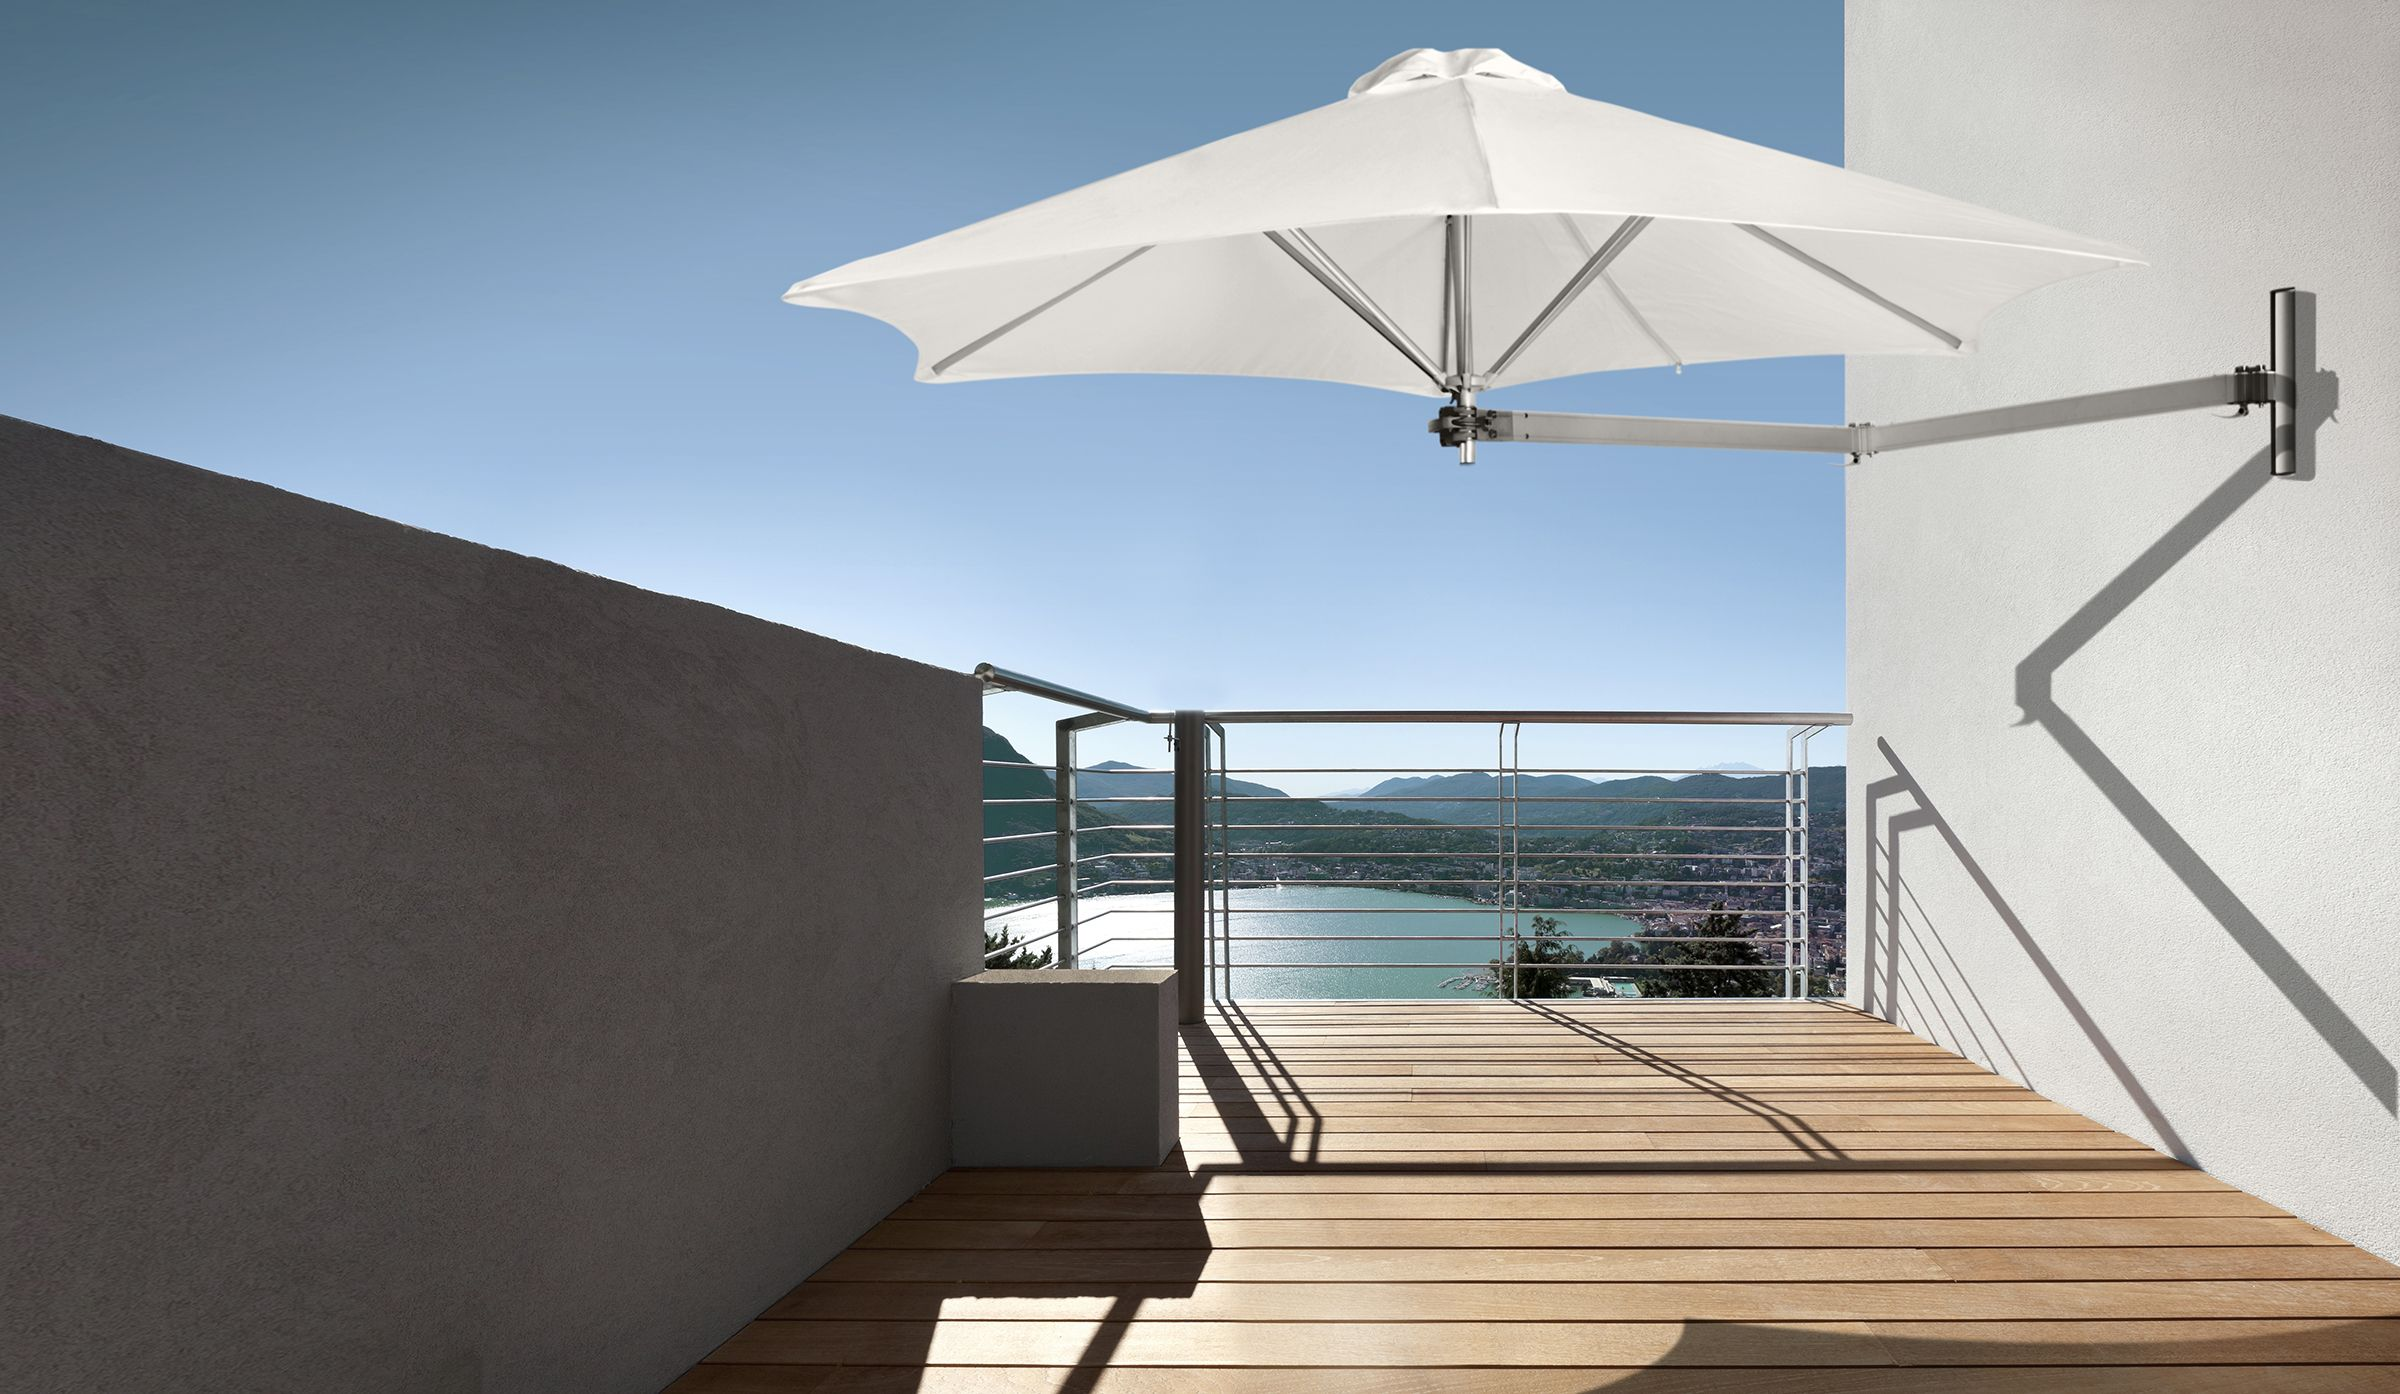 The Paraflex Wall Mounted Umbrella With No Central Pole Your Options In A Smaller E Are Multiplied